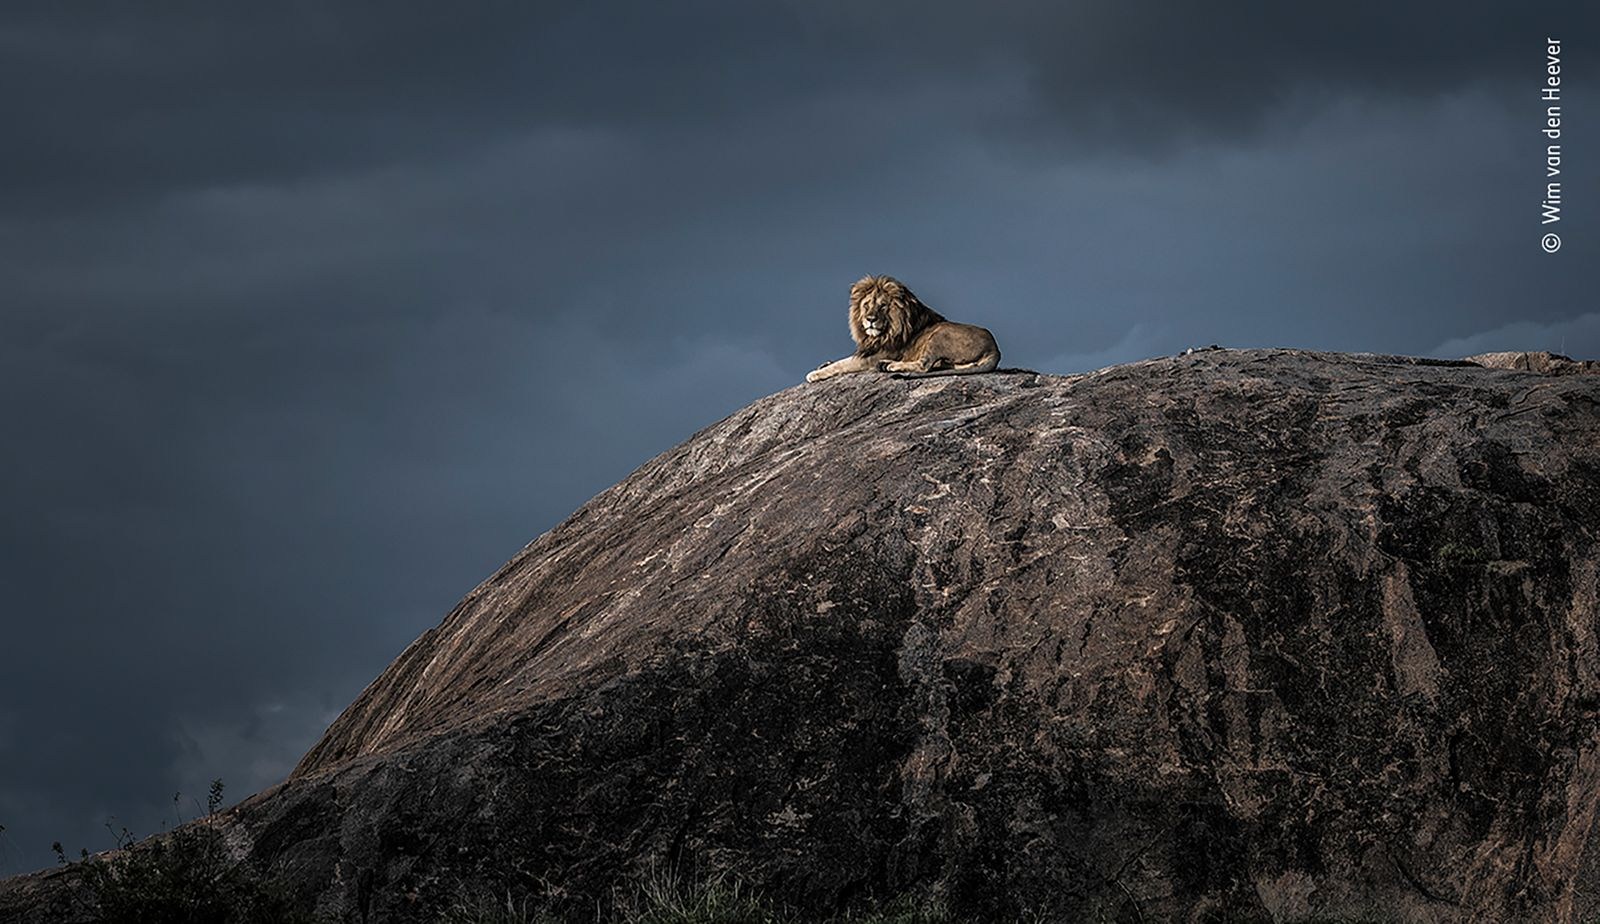 Lion king by Wim van den Heever, South Africa